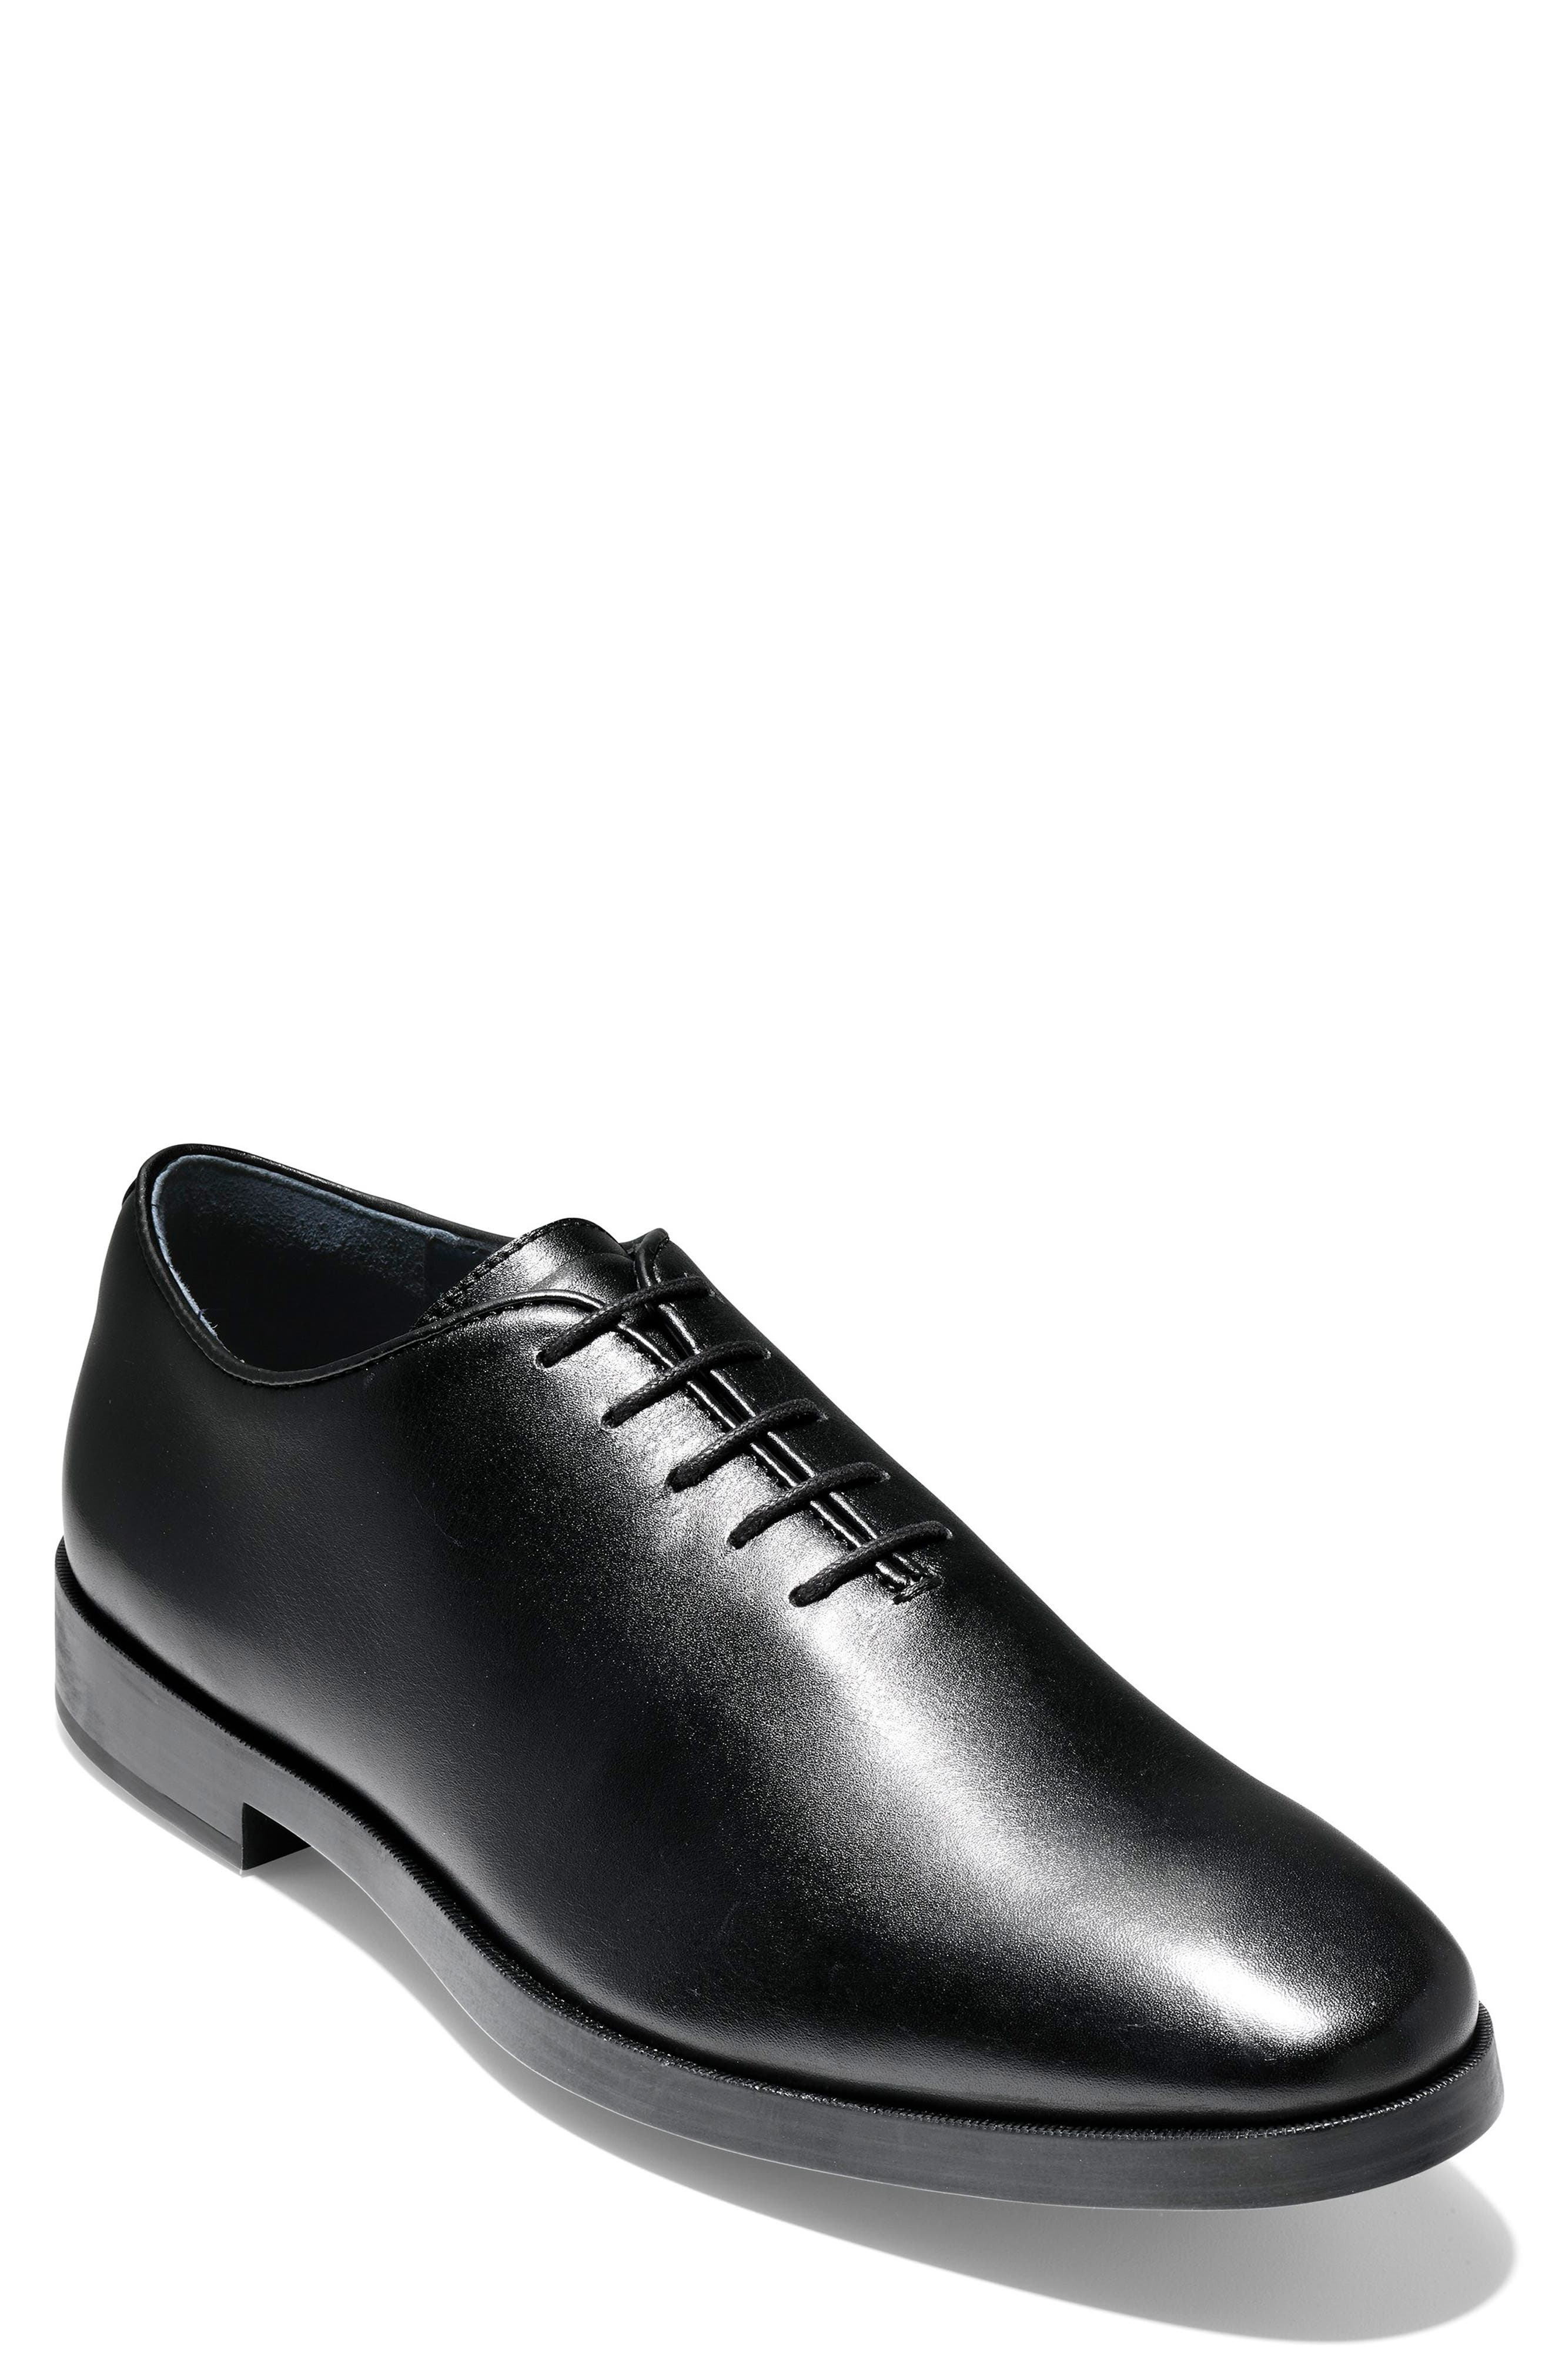 Jefferson Waterproof Wholecut Oxford,                             Main thumbnail 1, color,                             BLACK LEATHER